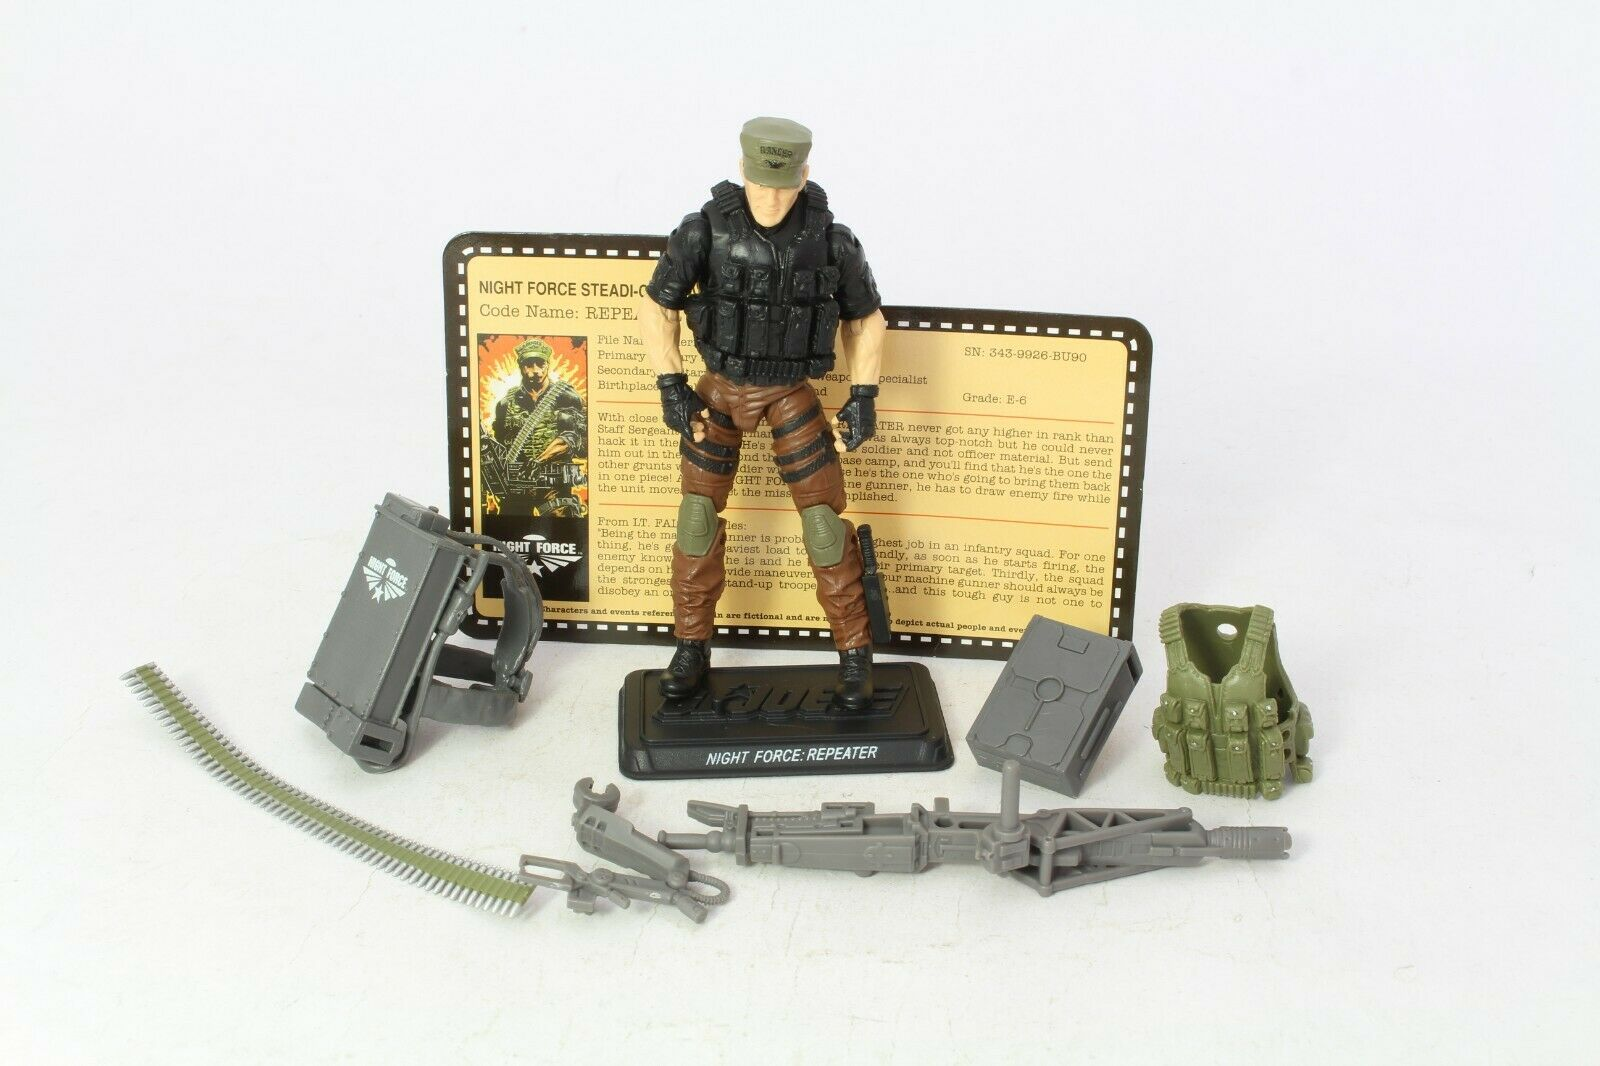 GI Joe Night Force Repeater 2013 Convention Exc 25th Anniversary Action Figure